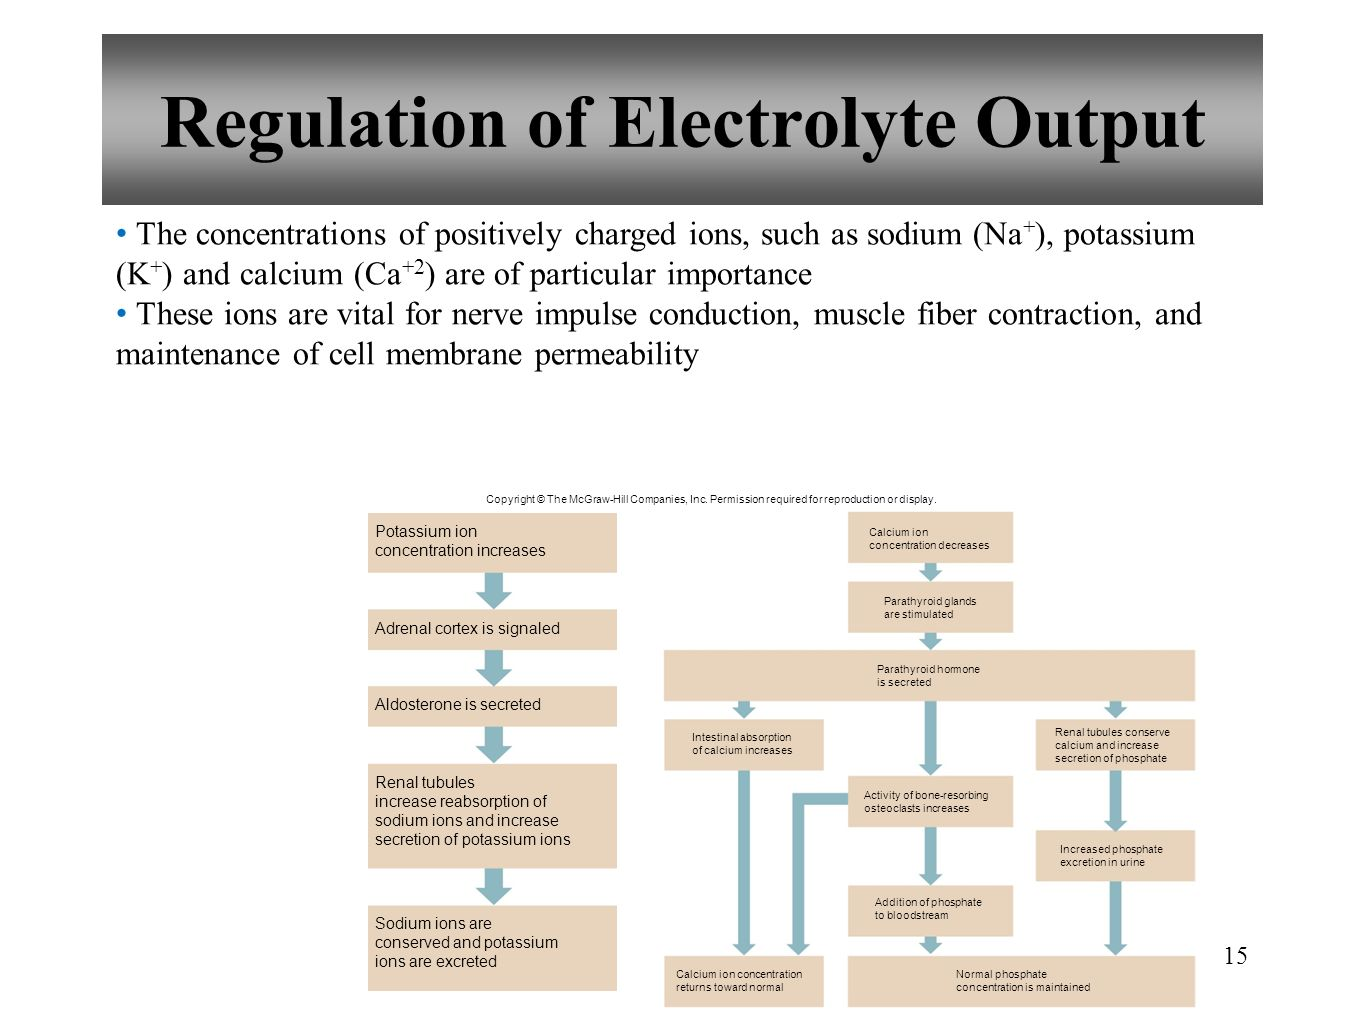 Regulation of Electrolyte Output